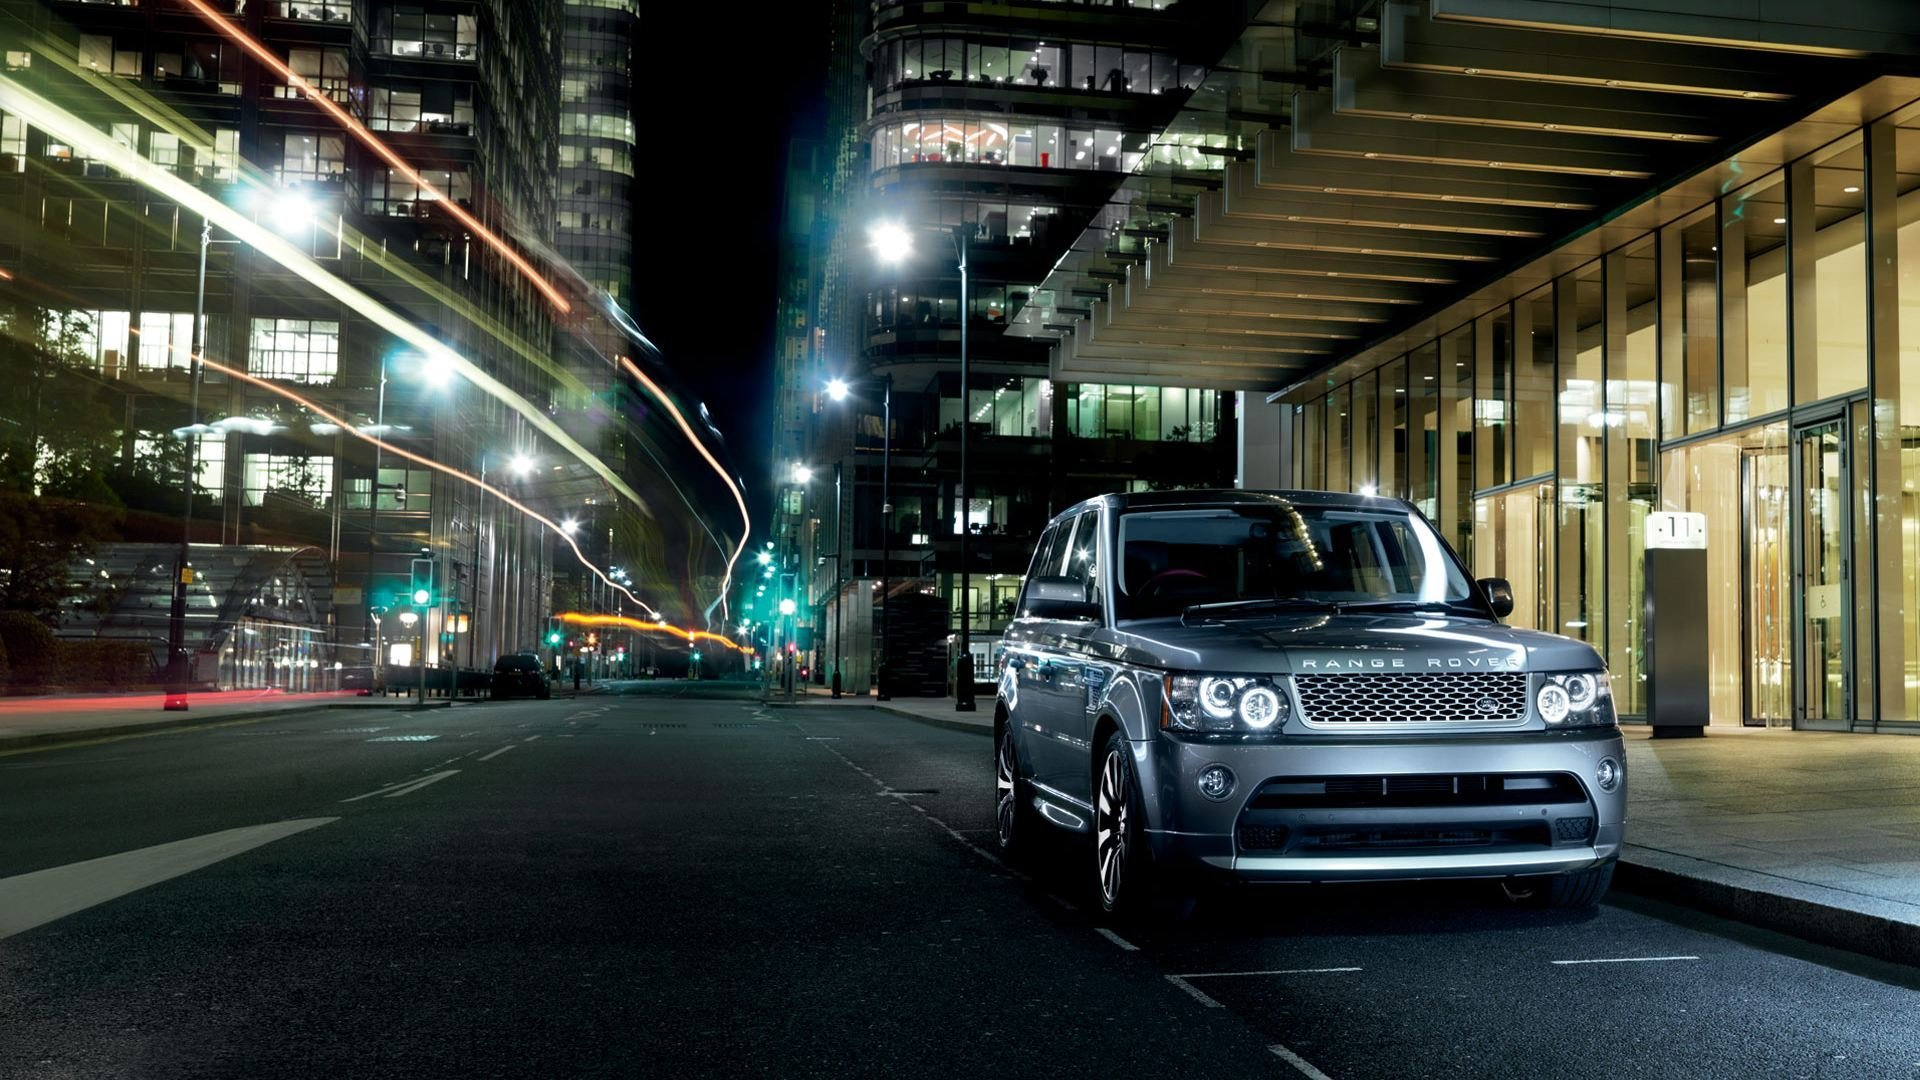 Awesome Land Rover Range Rover Free Wallpaper Id 68483 For Full Hd